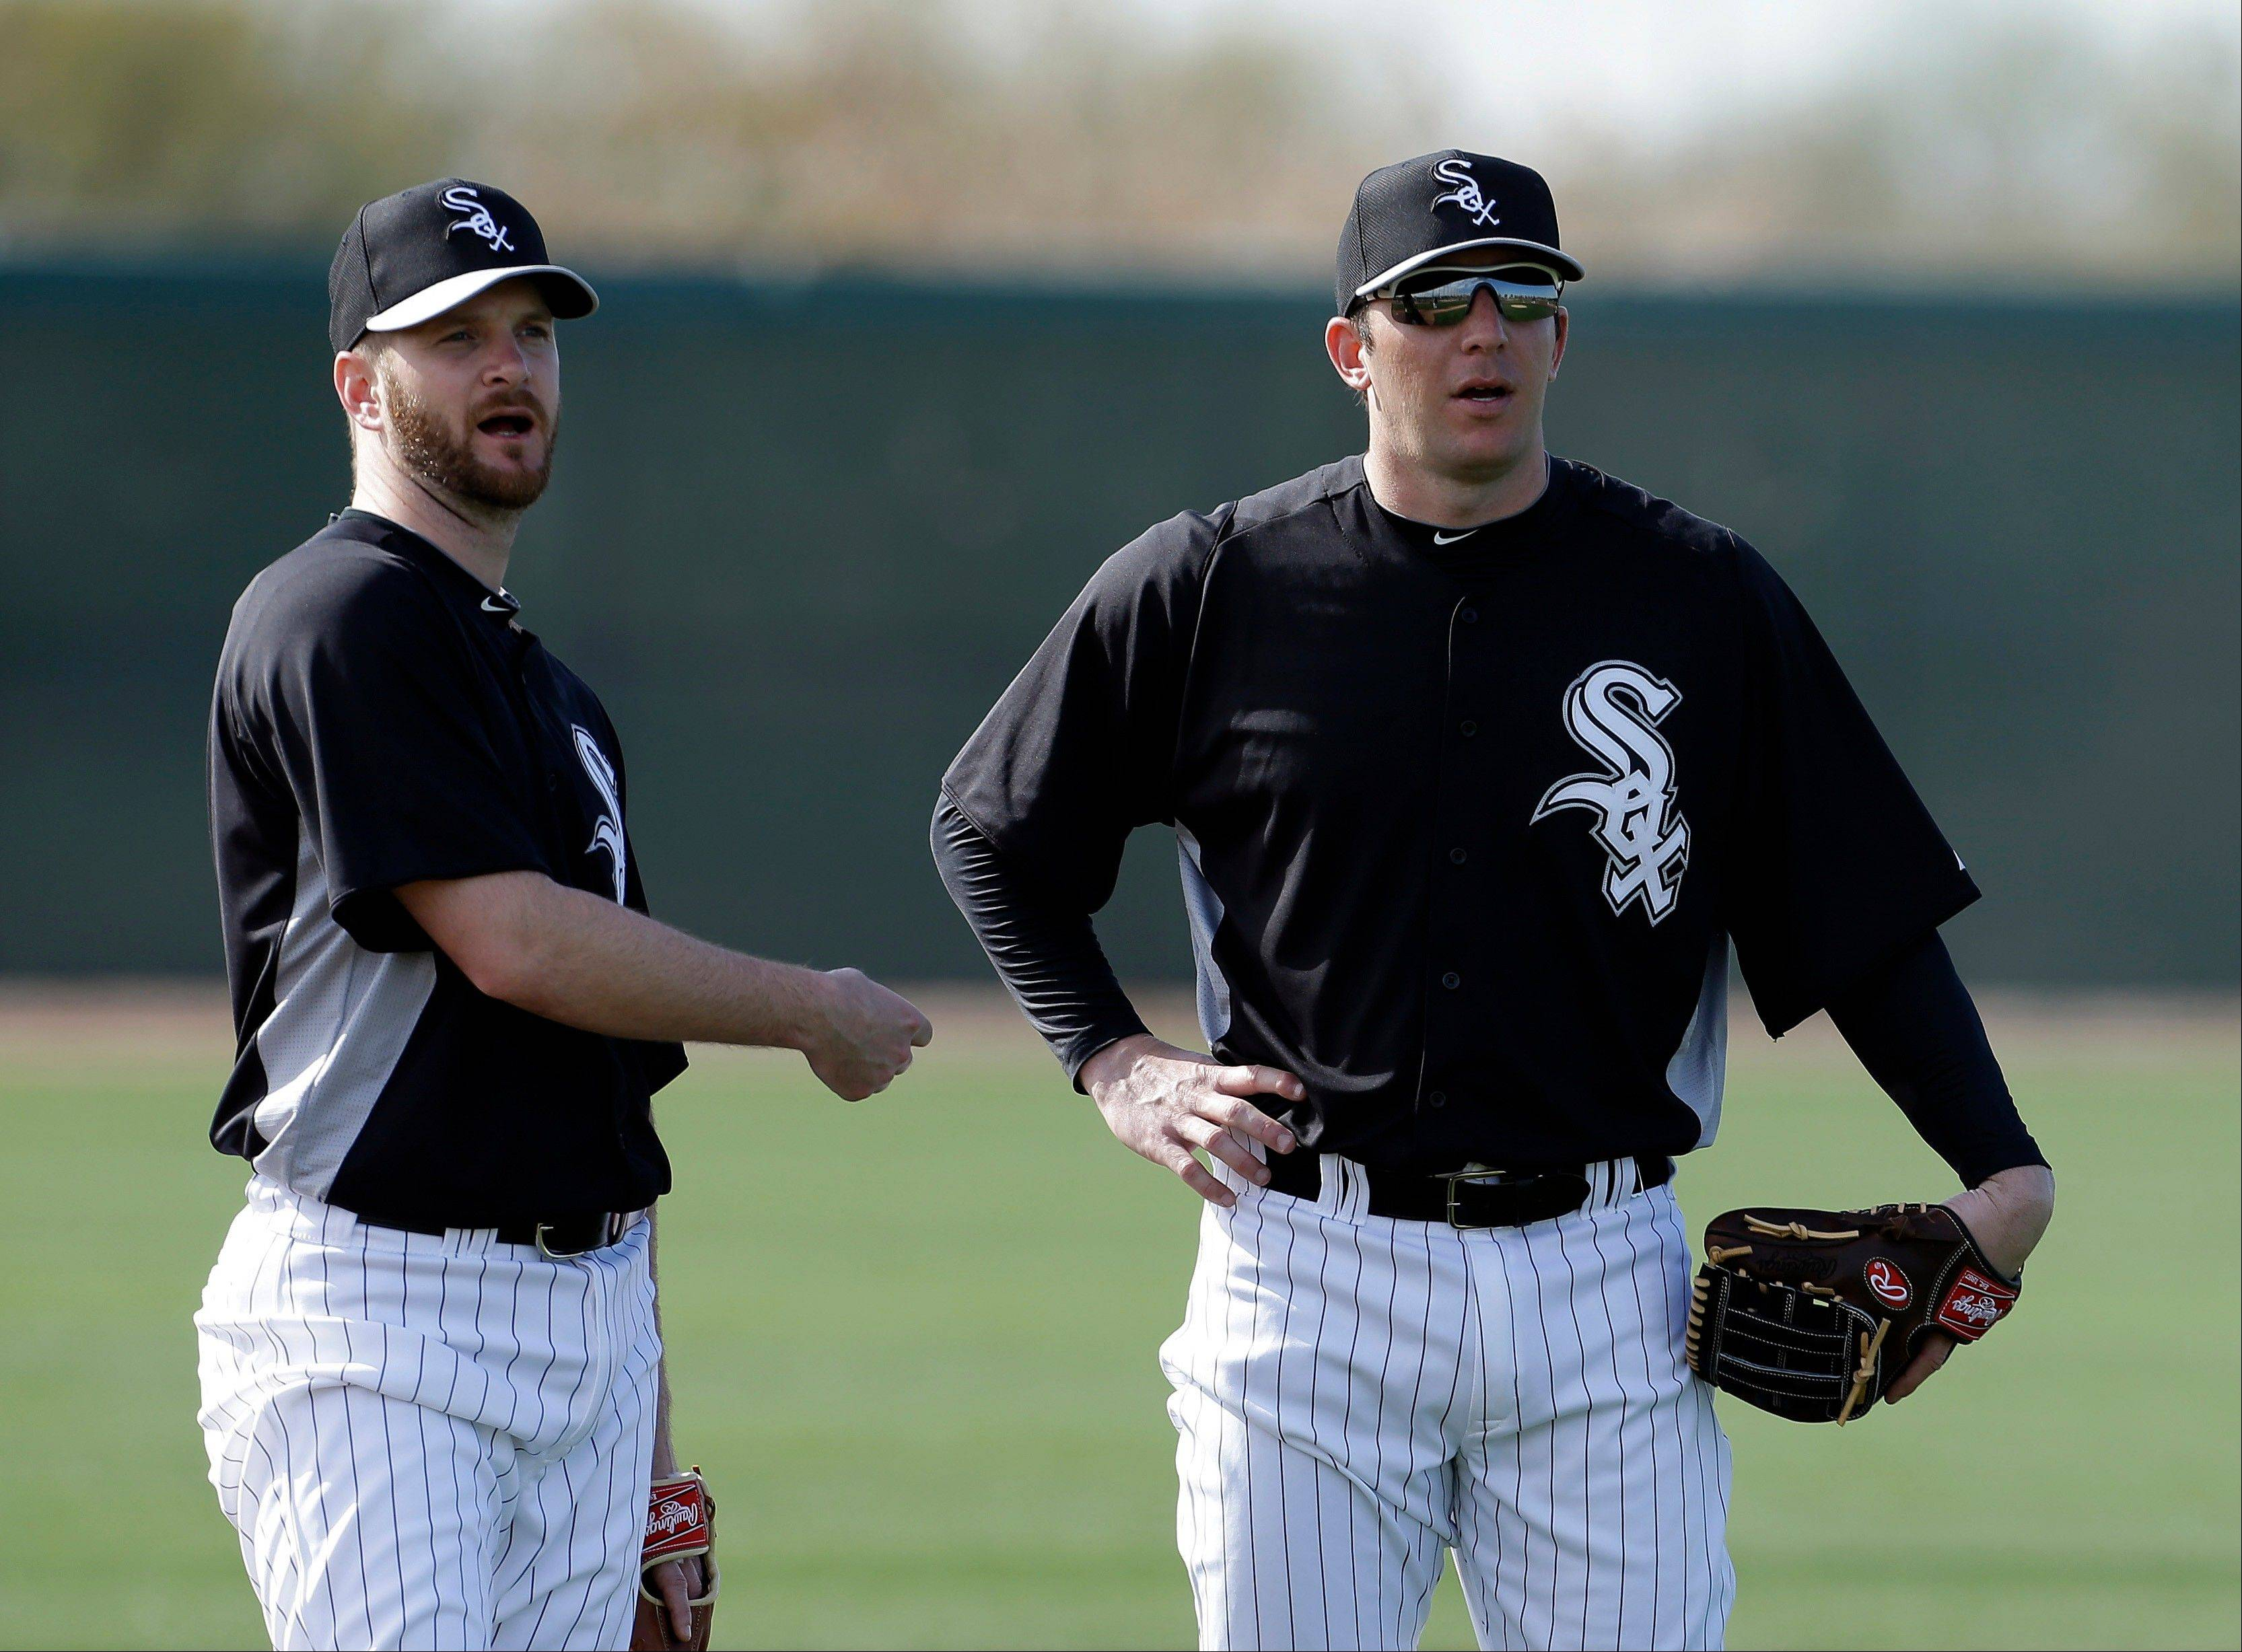 Third baseman Jeff Keppinger, left, signed a three-year deal with the White Sox during the off-season.